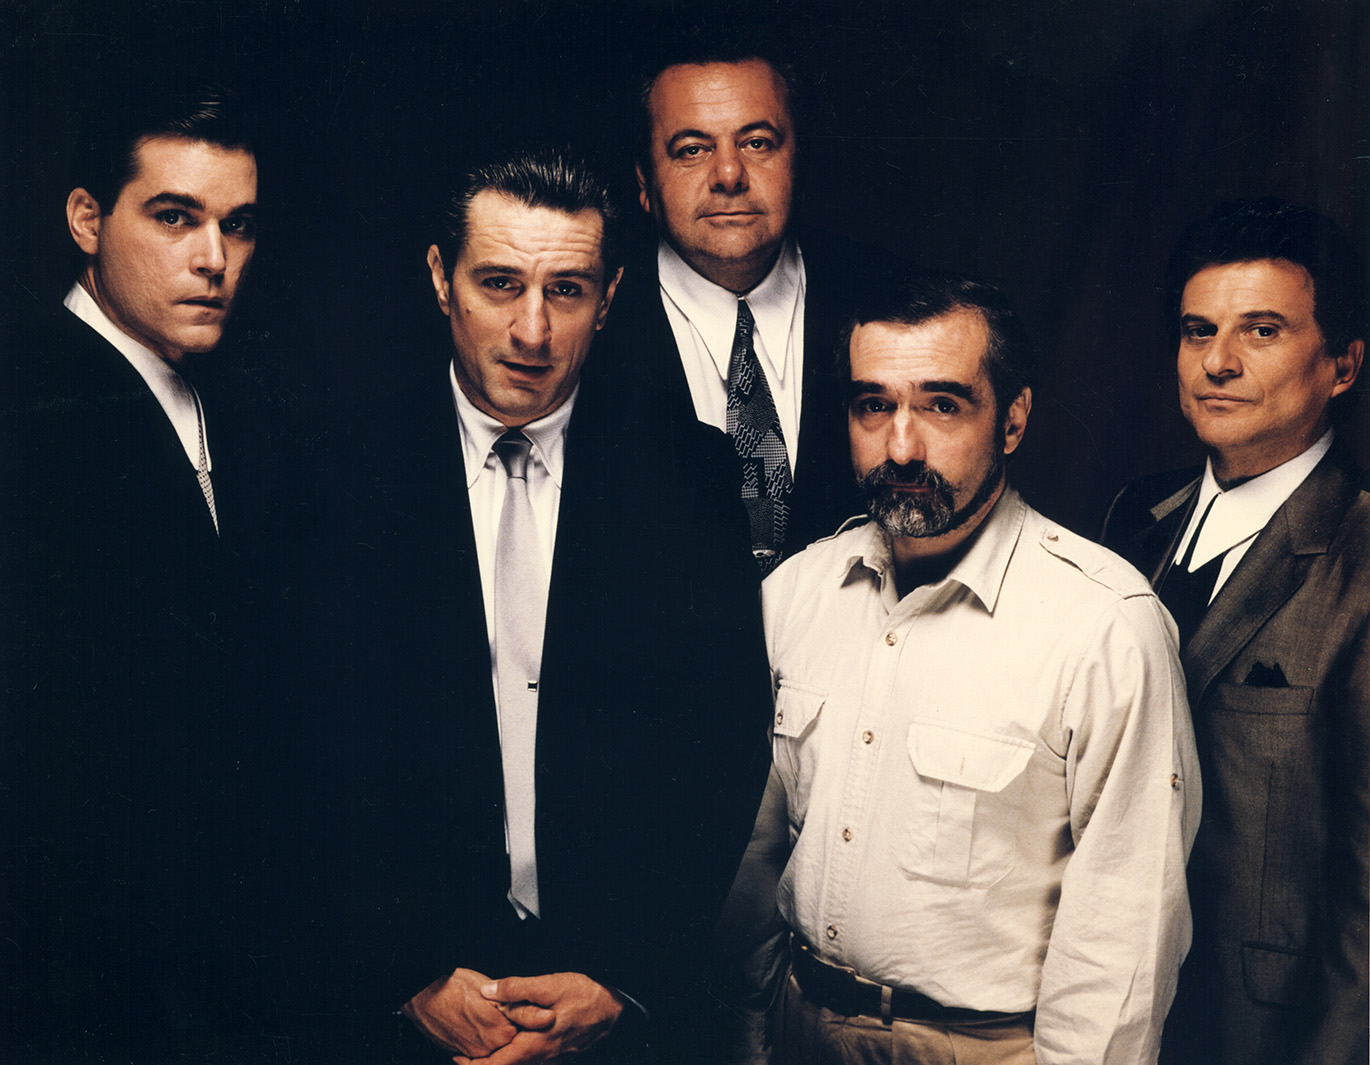 Ray Liotta, Robert DeNiro, Paul Sorvino, Martin Scorsese e/and Joe Pesci, Goodfellas, 1990. Martin Scorsese Collection, New York.